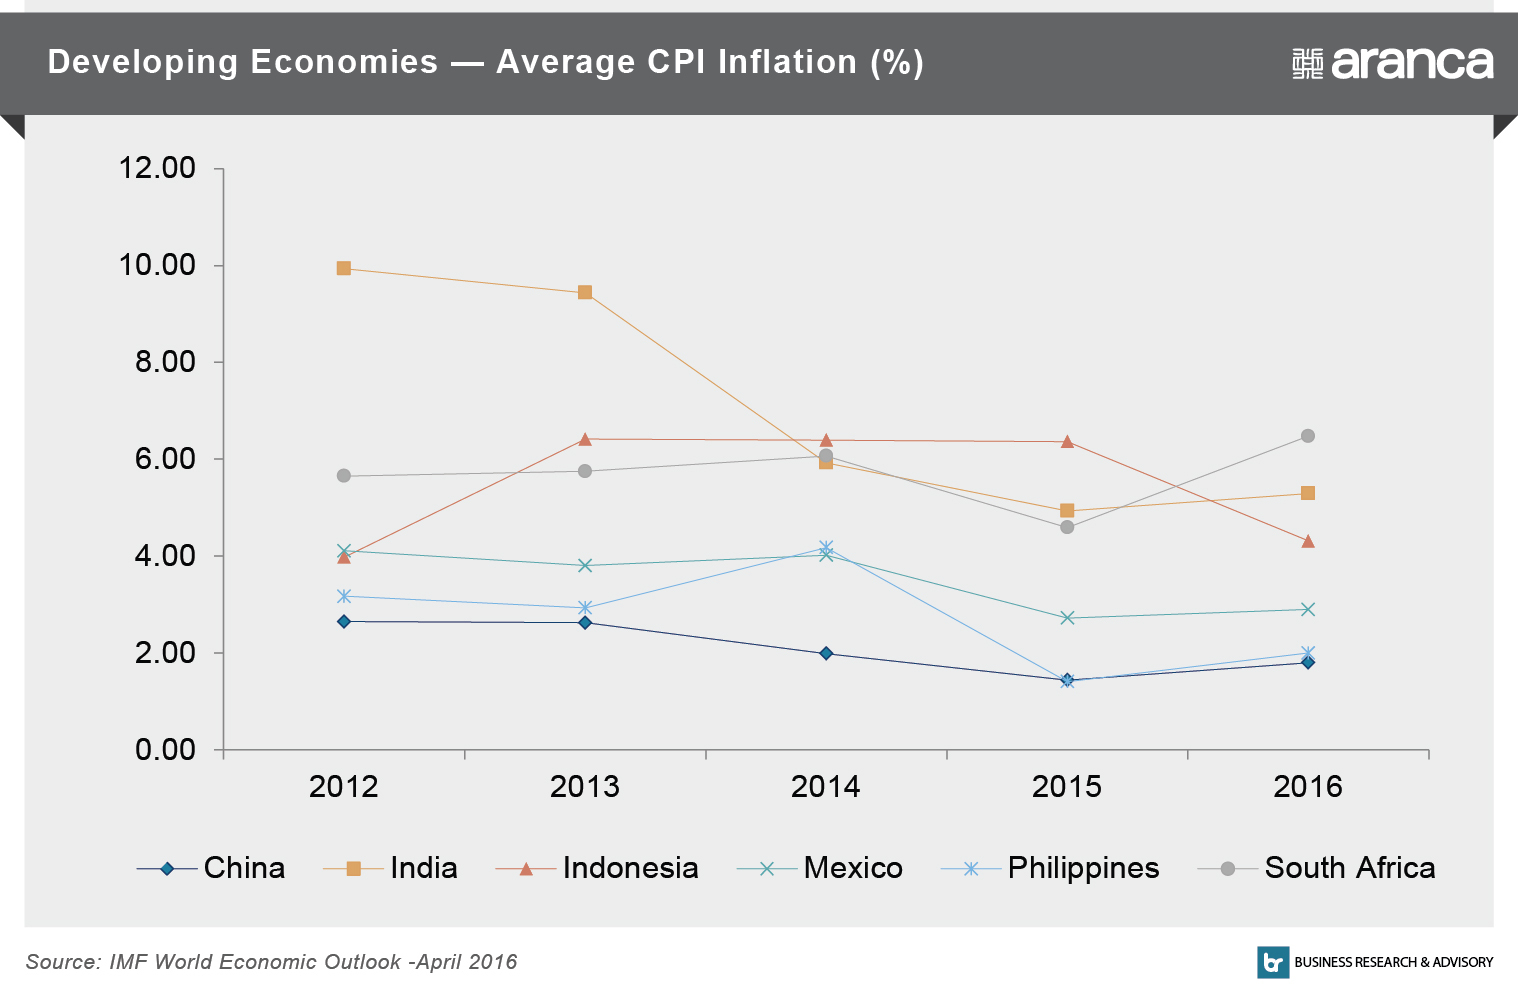 Developing Economies - Average CPI Inflation (%)